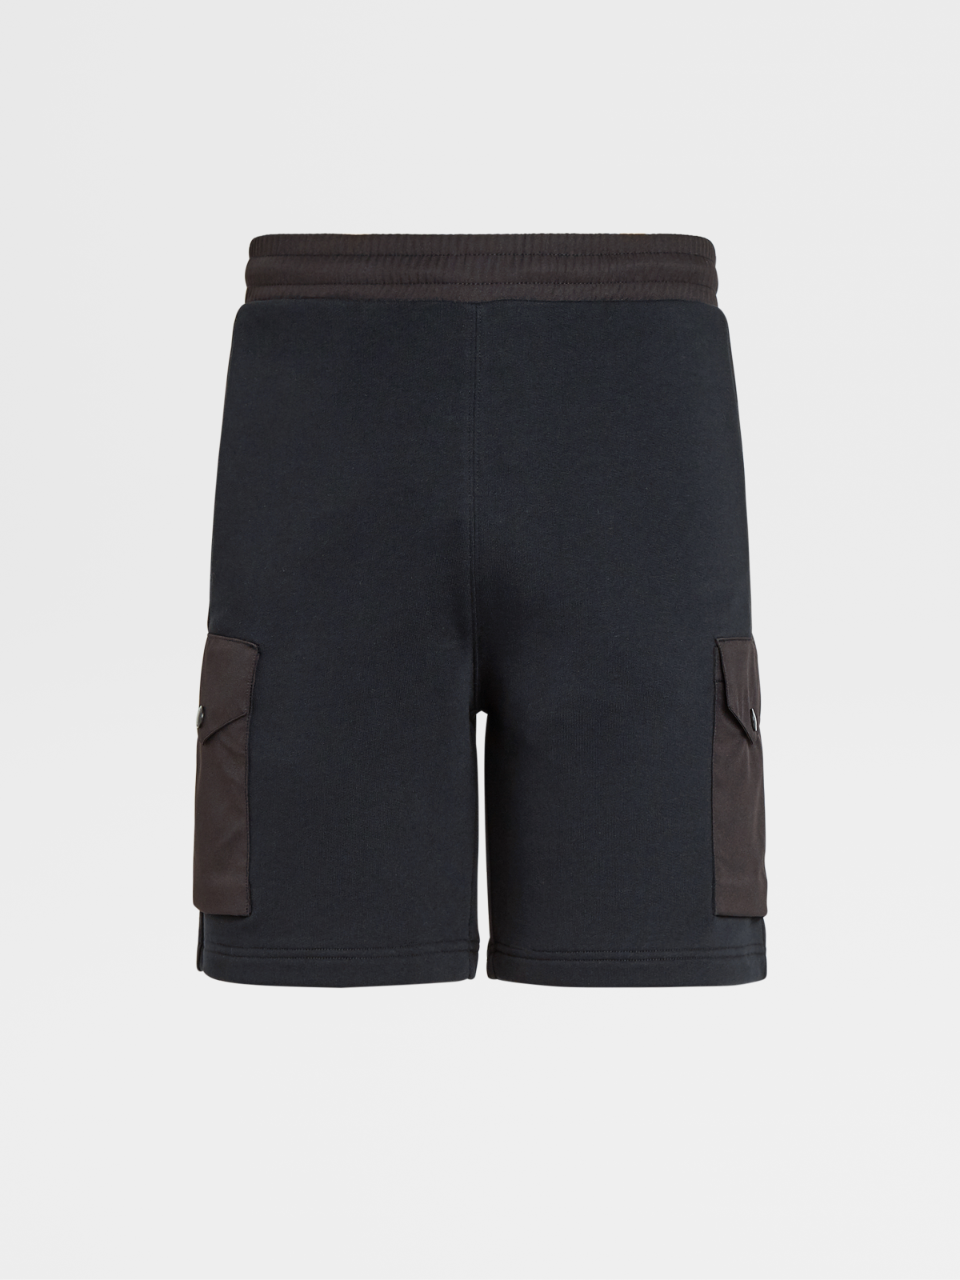 #UseTheExisting Cotton Bermuda Shorts